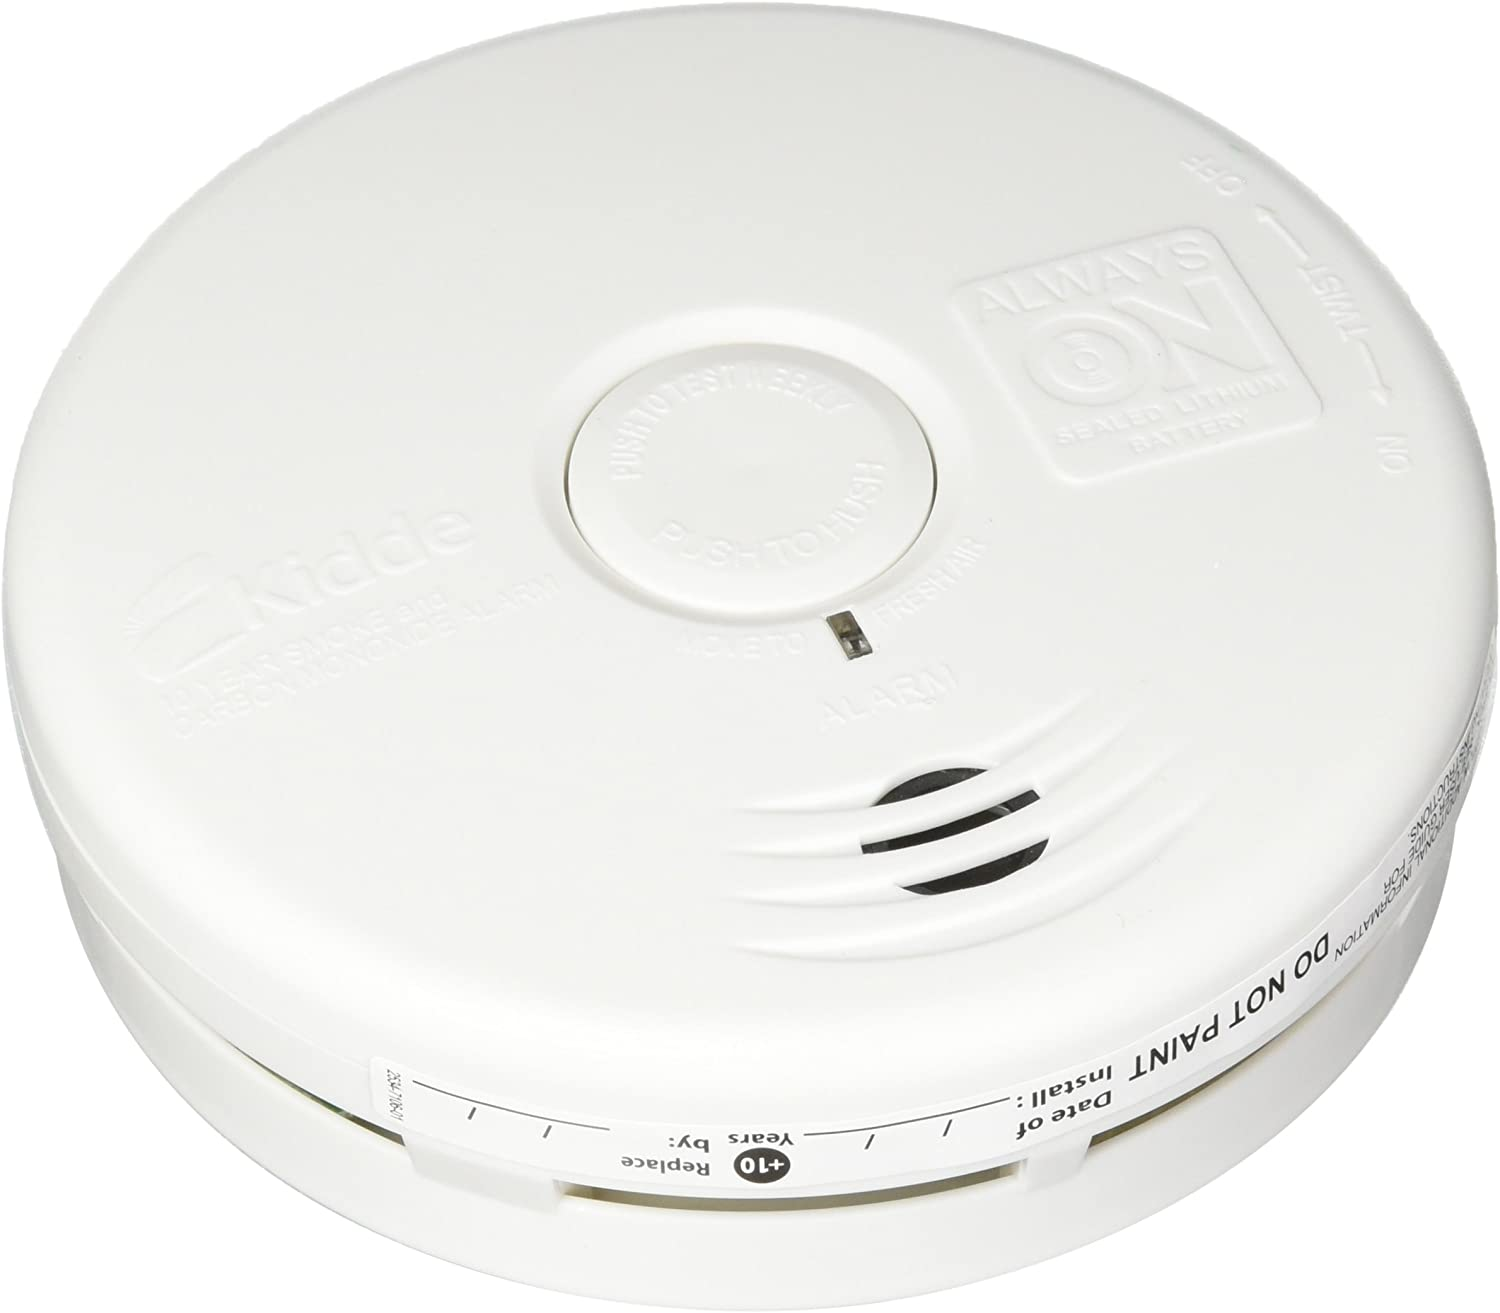 Kidde P3010k Co Battery Operated Combination Carbon Monoxide And